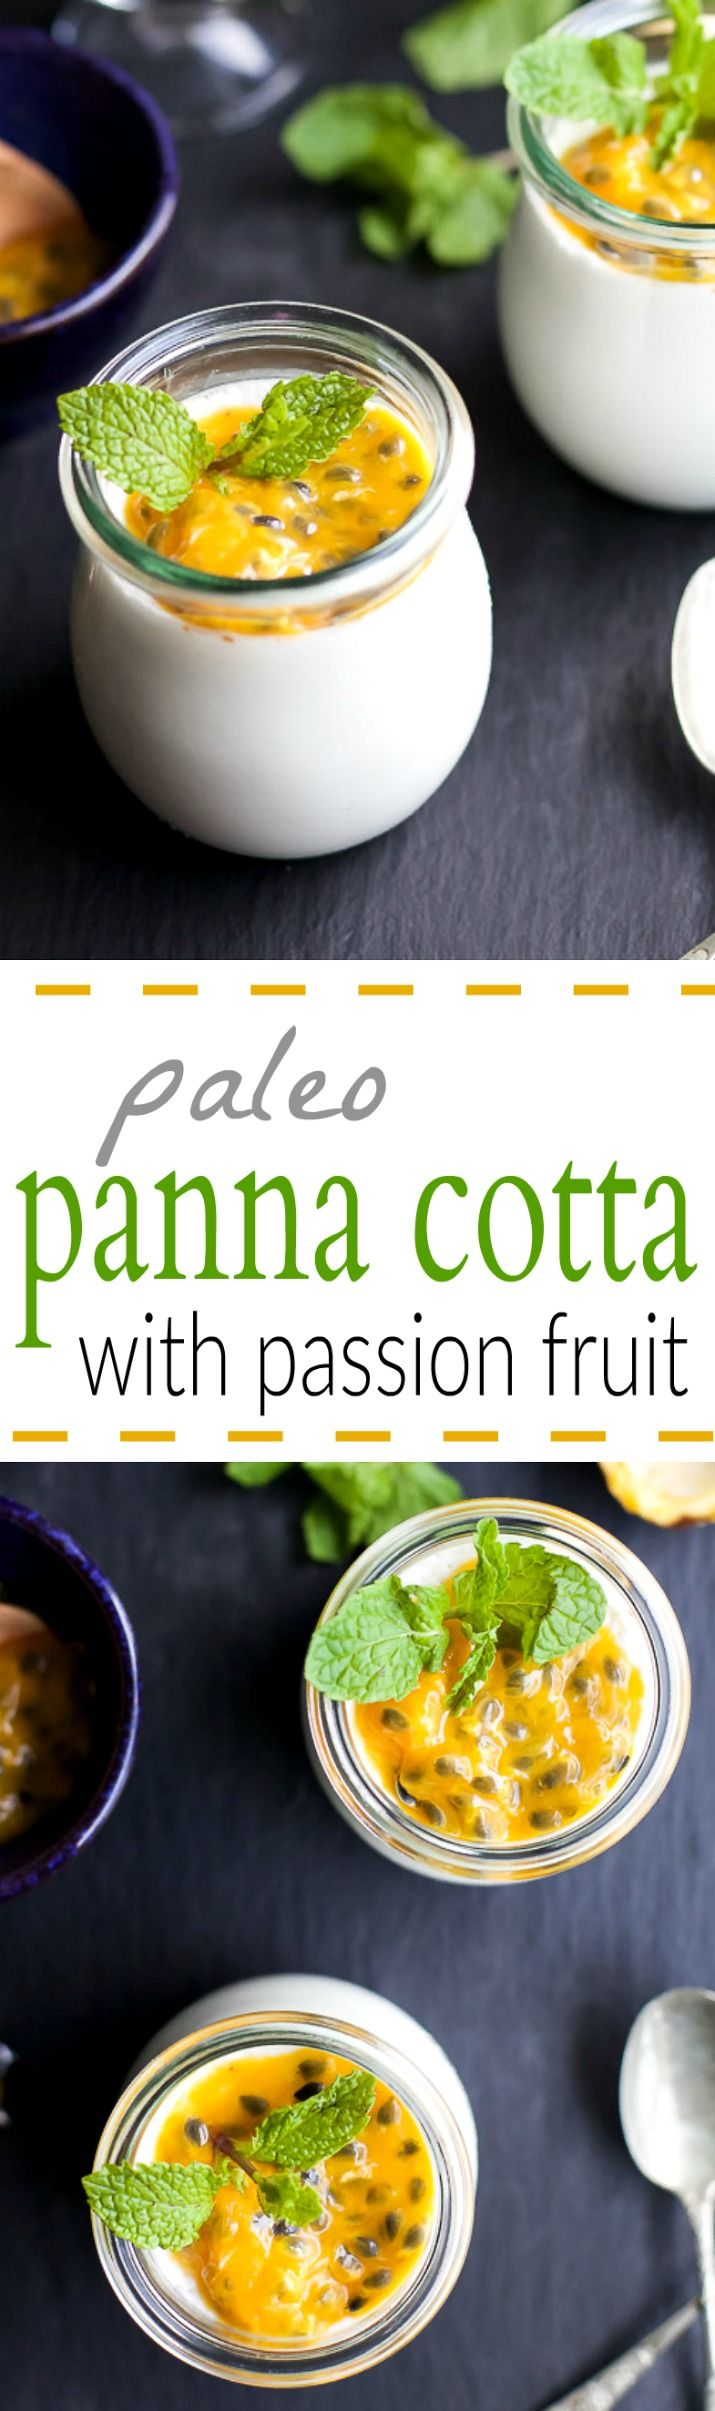 Paleo Vanilla Panna Cotta with Passion Fruit - a slightly sweet creamy Panna Cotta recipe that'll quickly become your new favorite dessert! And guess what, it's guilt free too! | joyfulhealthyeats.com